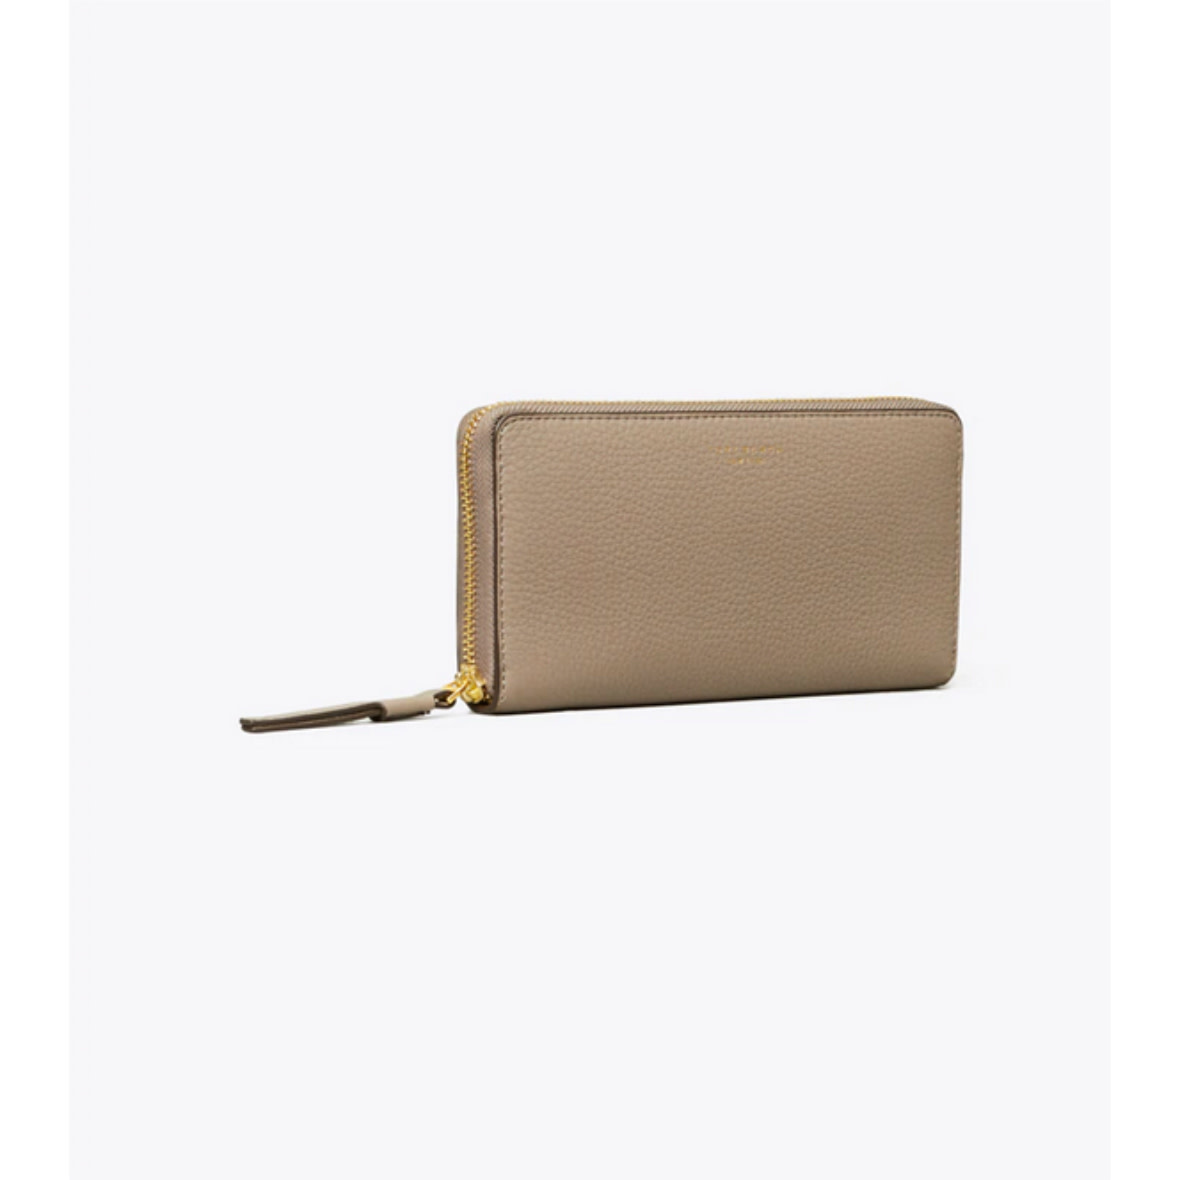 Tory Burch Tory Burch Perry Wallet